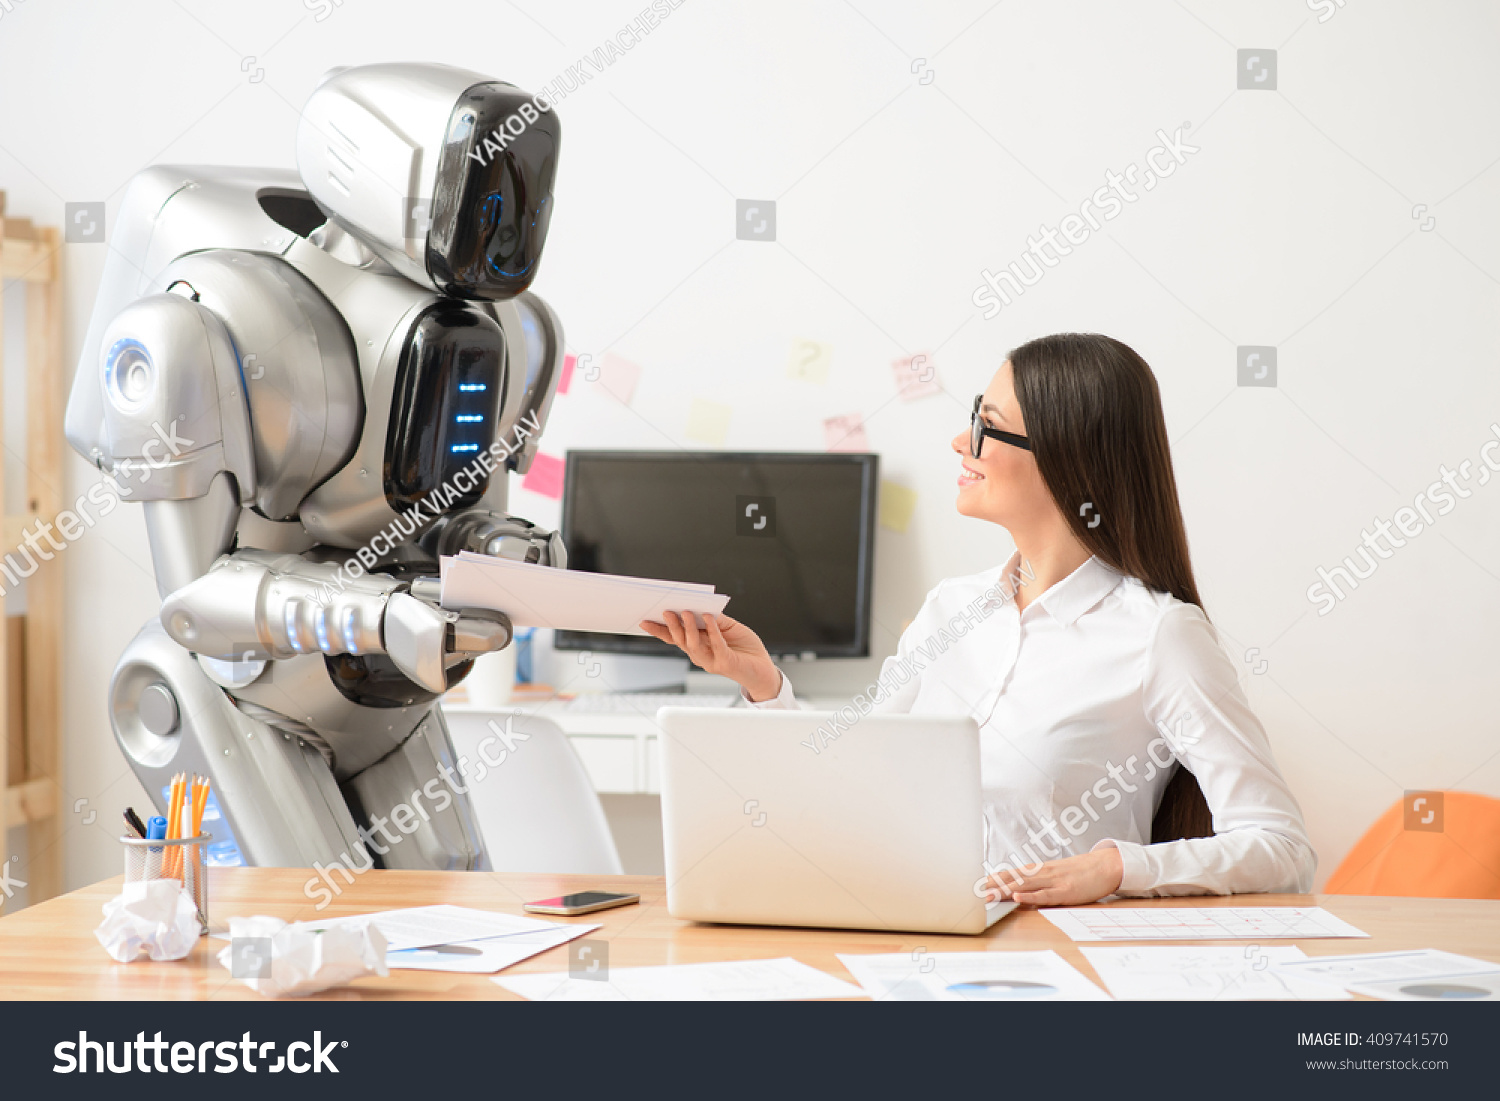 nice girl and robot working in the office person